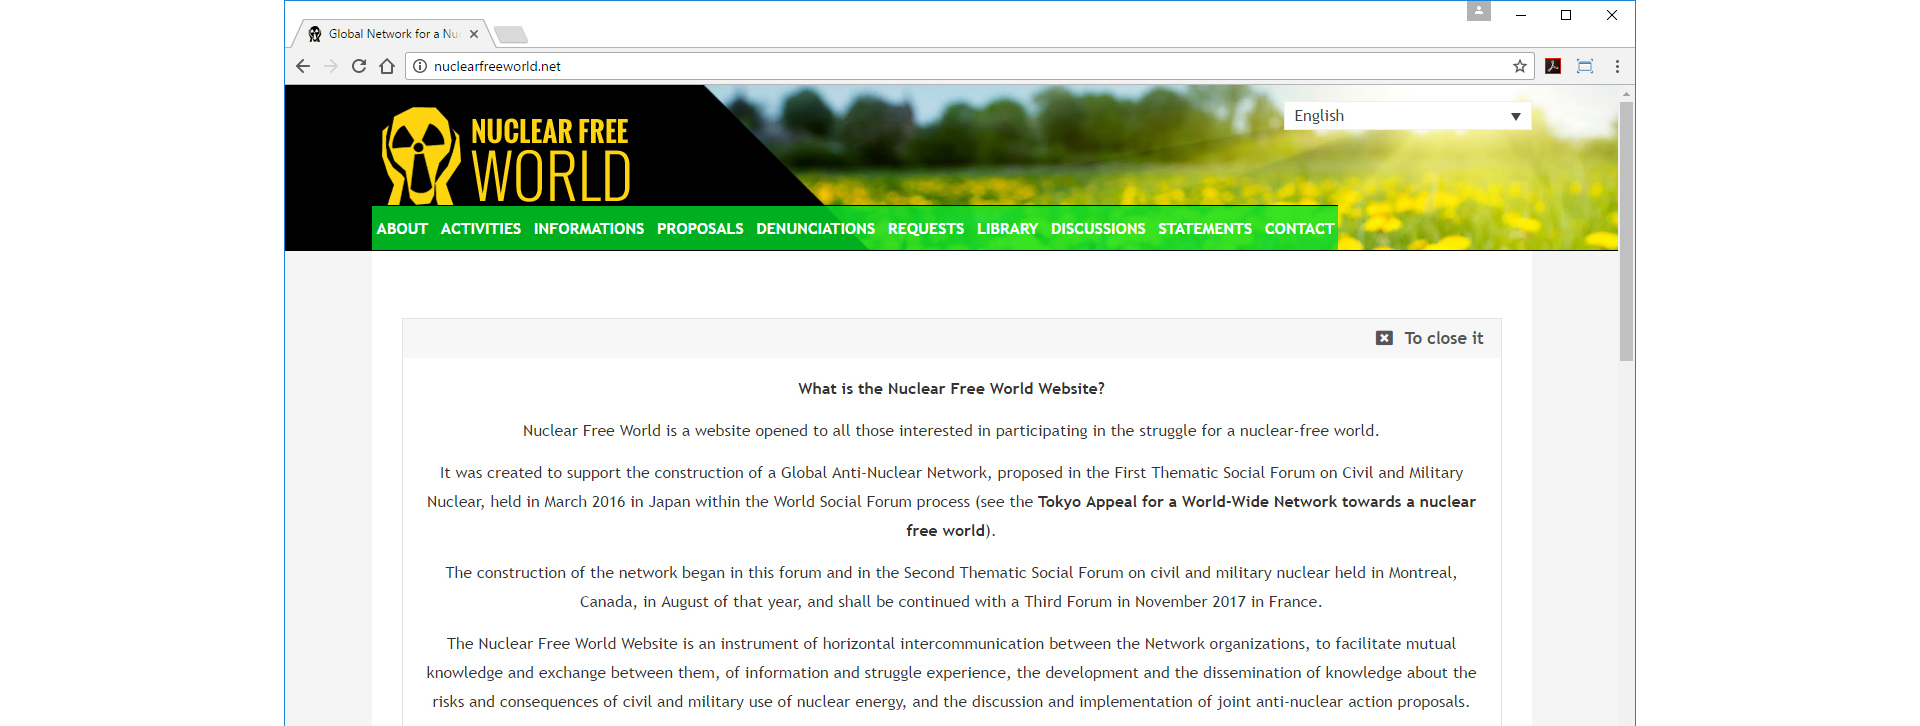 Nuclear Free World Website